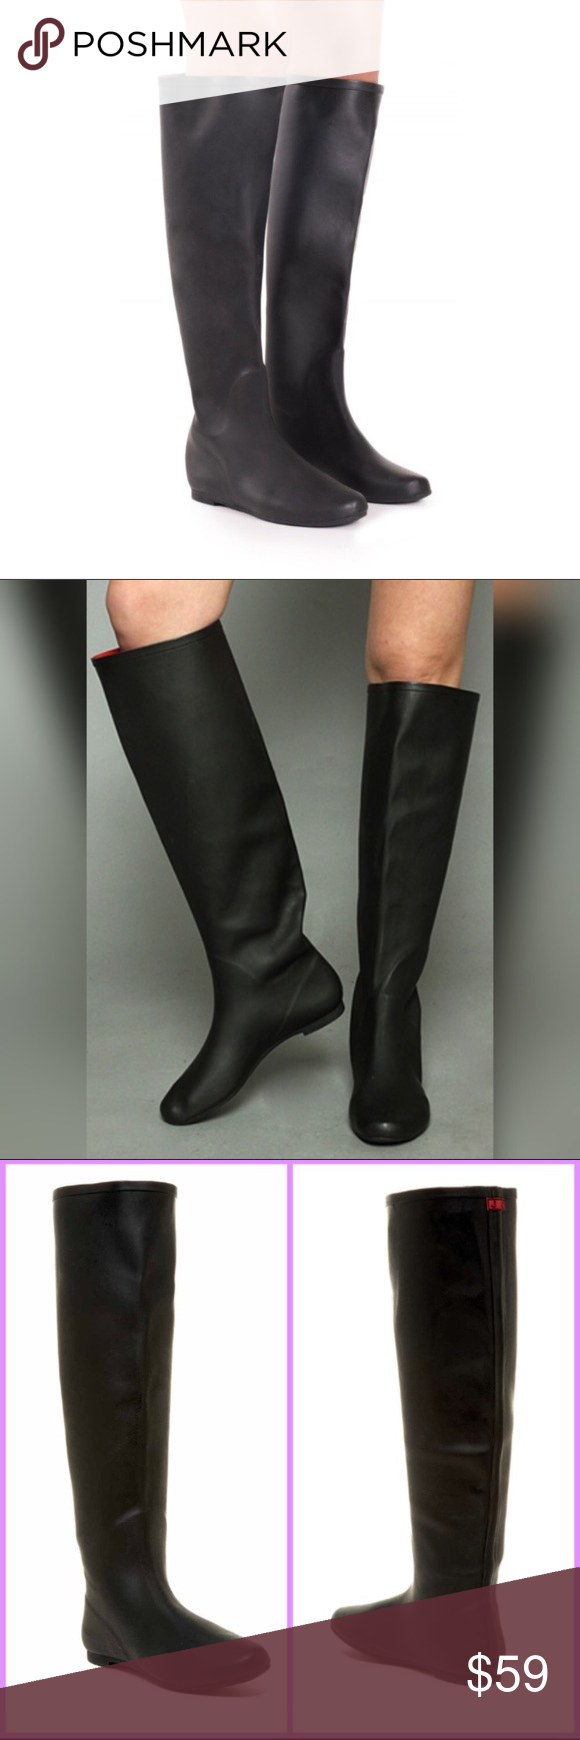 """Jeffrey Campbell Marsha Black Knee High Rainboot 8 New in Box Jeffrey Campbell – Marsha Over the Knee Rain Boot   Size 8 Color: black A matte finish lends a modern sensibility to a waterproof rain boot grounded by a low, flat heel. Round toe Pull-on Waterproof Approx. 18.5"""" shaft height, 16"""" opening circumference  Materials: PVC upper, synthetic lining, rubber sole Jeffrey Campbell Shoes Winter & Rain Boots"""